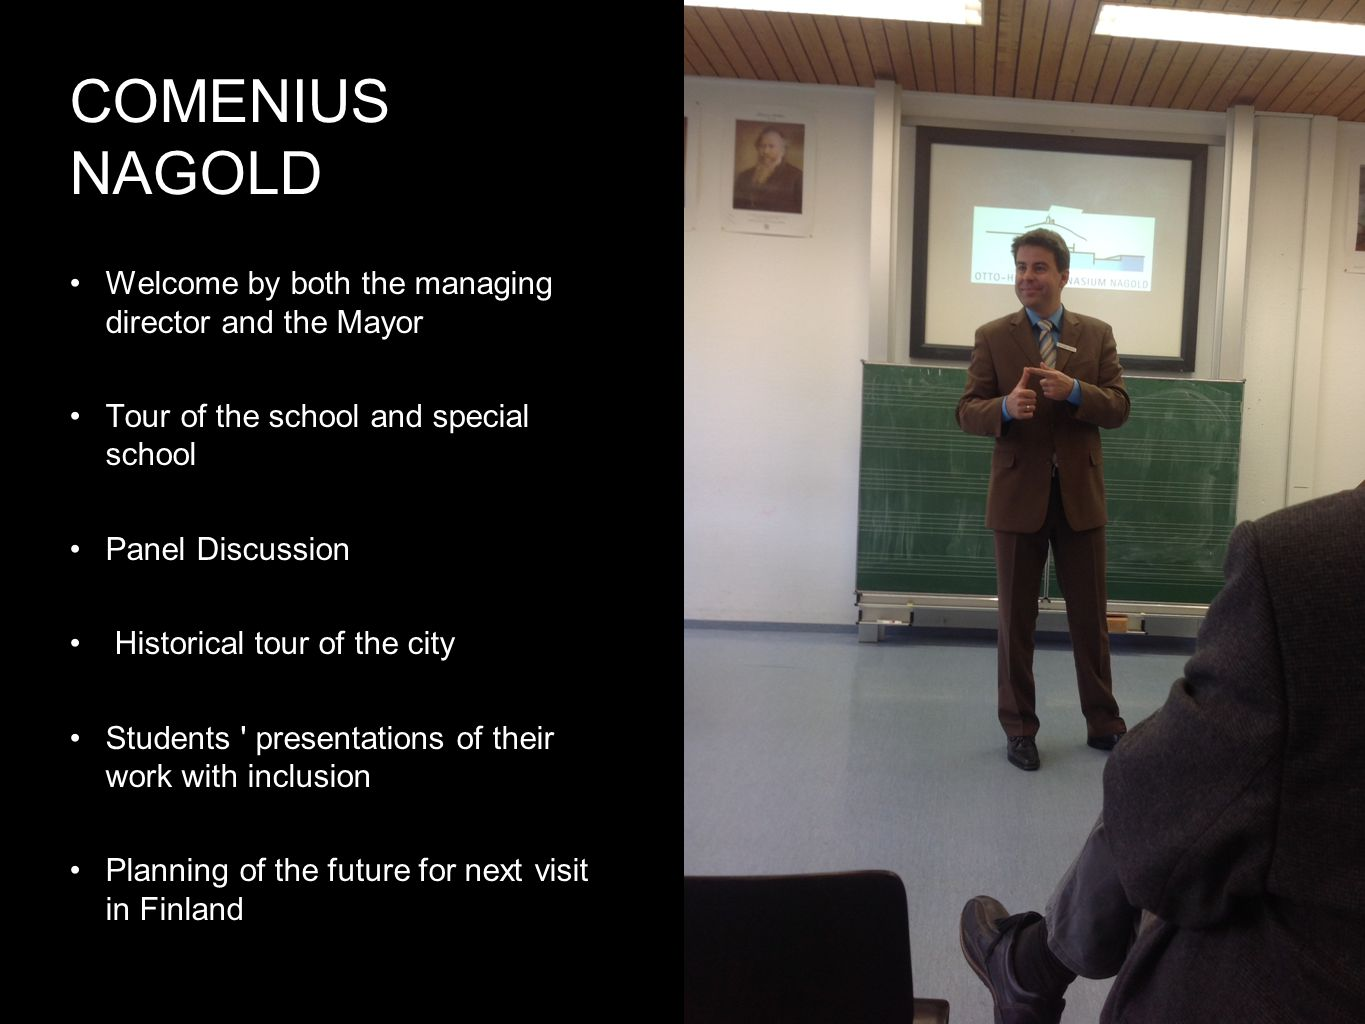 COMENIUS NAGOLD •Welcome by both the managing director and the Mayor •Tour of the school and special school •Panel Discussion • Historical tour of the city •Students presentations of their work with inclusion •Planning of the future for next visit in Finland